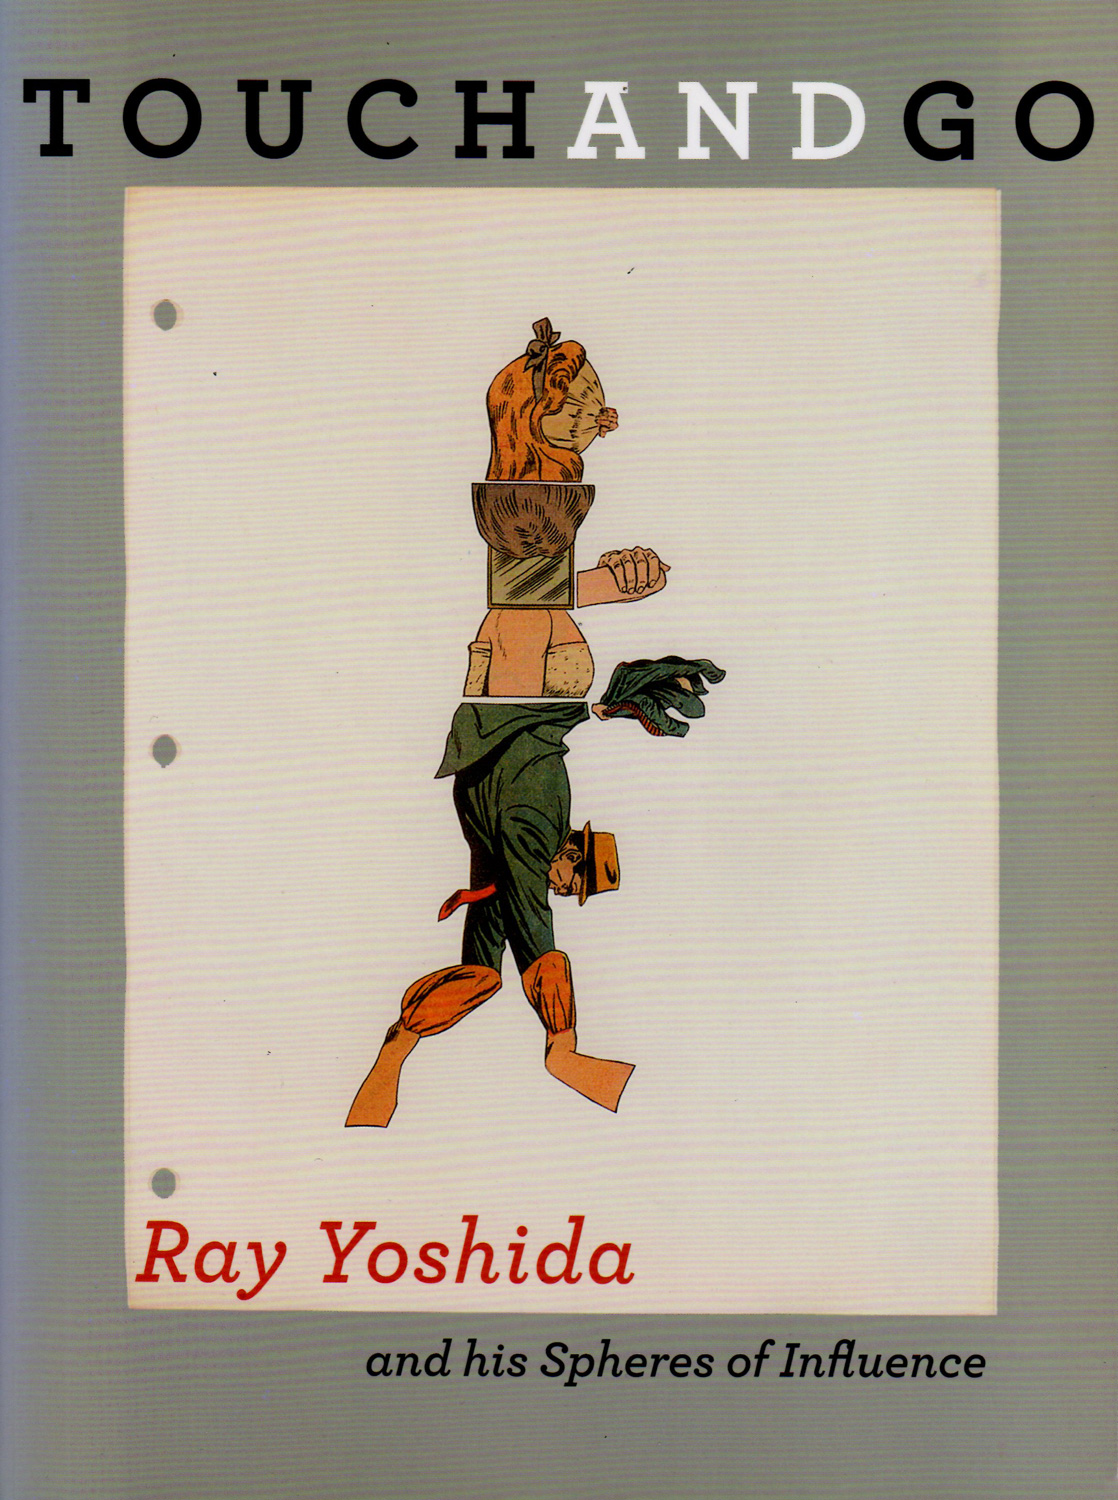 Touch and Go, Ray Yoshida and his Spheres of Influence  accompanied Ray Yoshida's 2011 retrospective at the School of the Art Institute of Chicago's Sullivan Galleries. This book traces Yoshida's oeuvre as well as the work of the students he influenced and later collected throughout his teaching career.